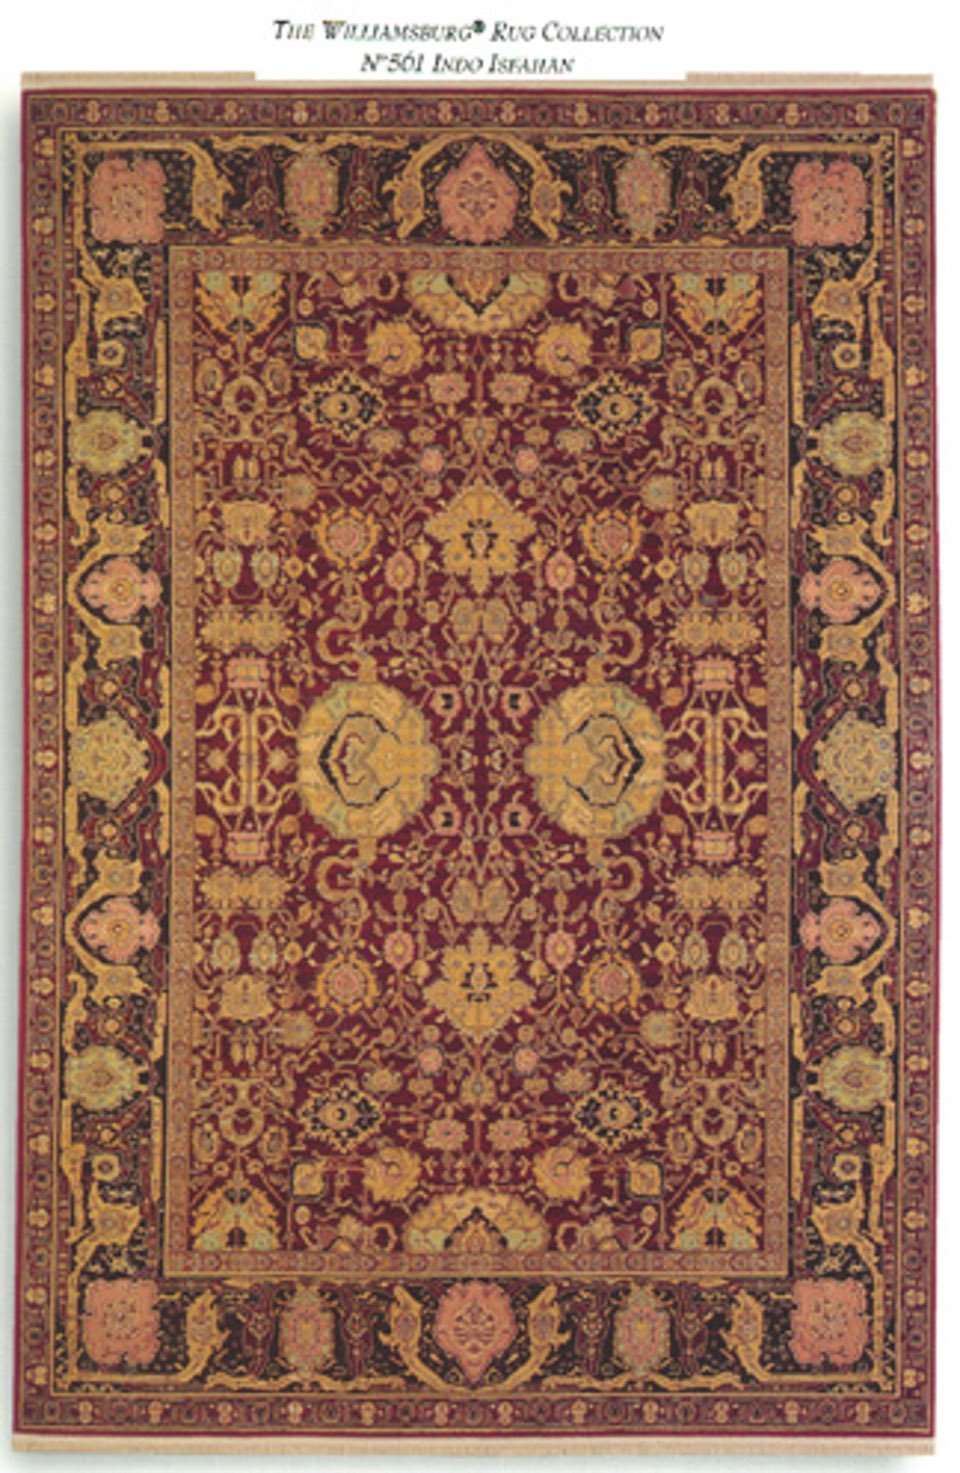 6x 9 Karastan Williamsburg Rug